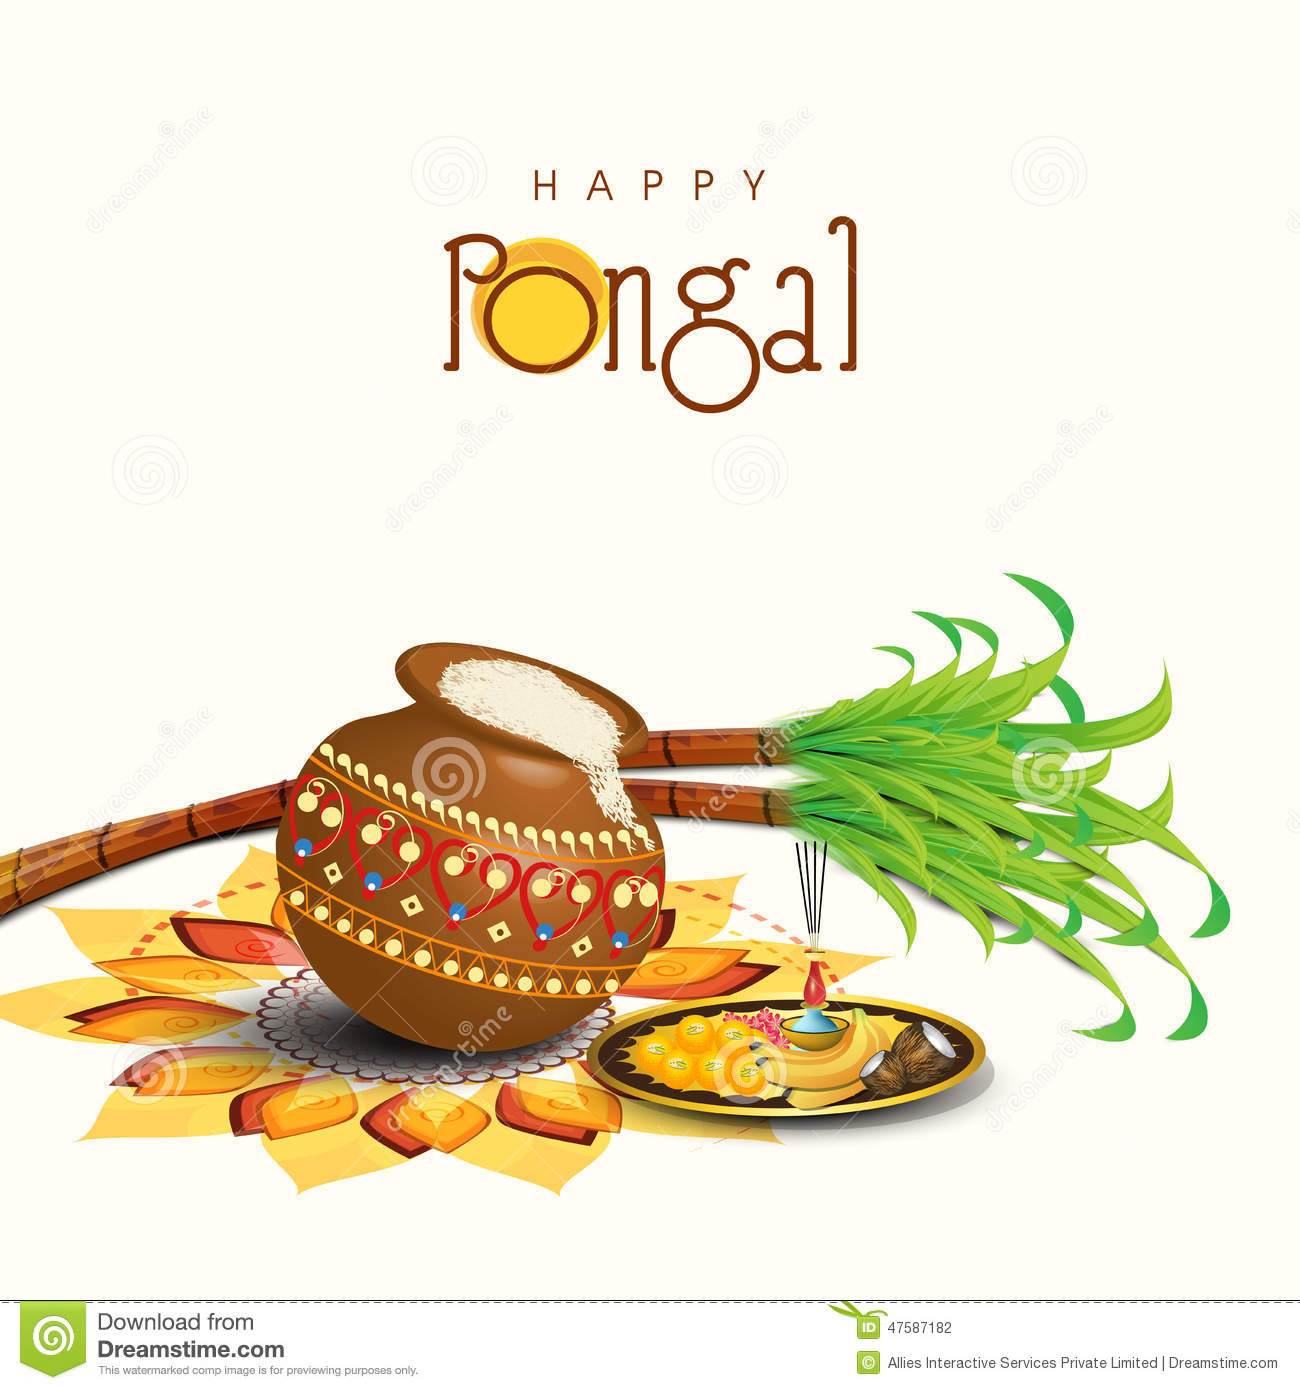 Pongal clipart 14 » Clipart Station.